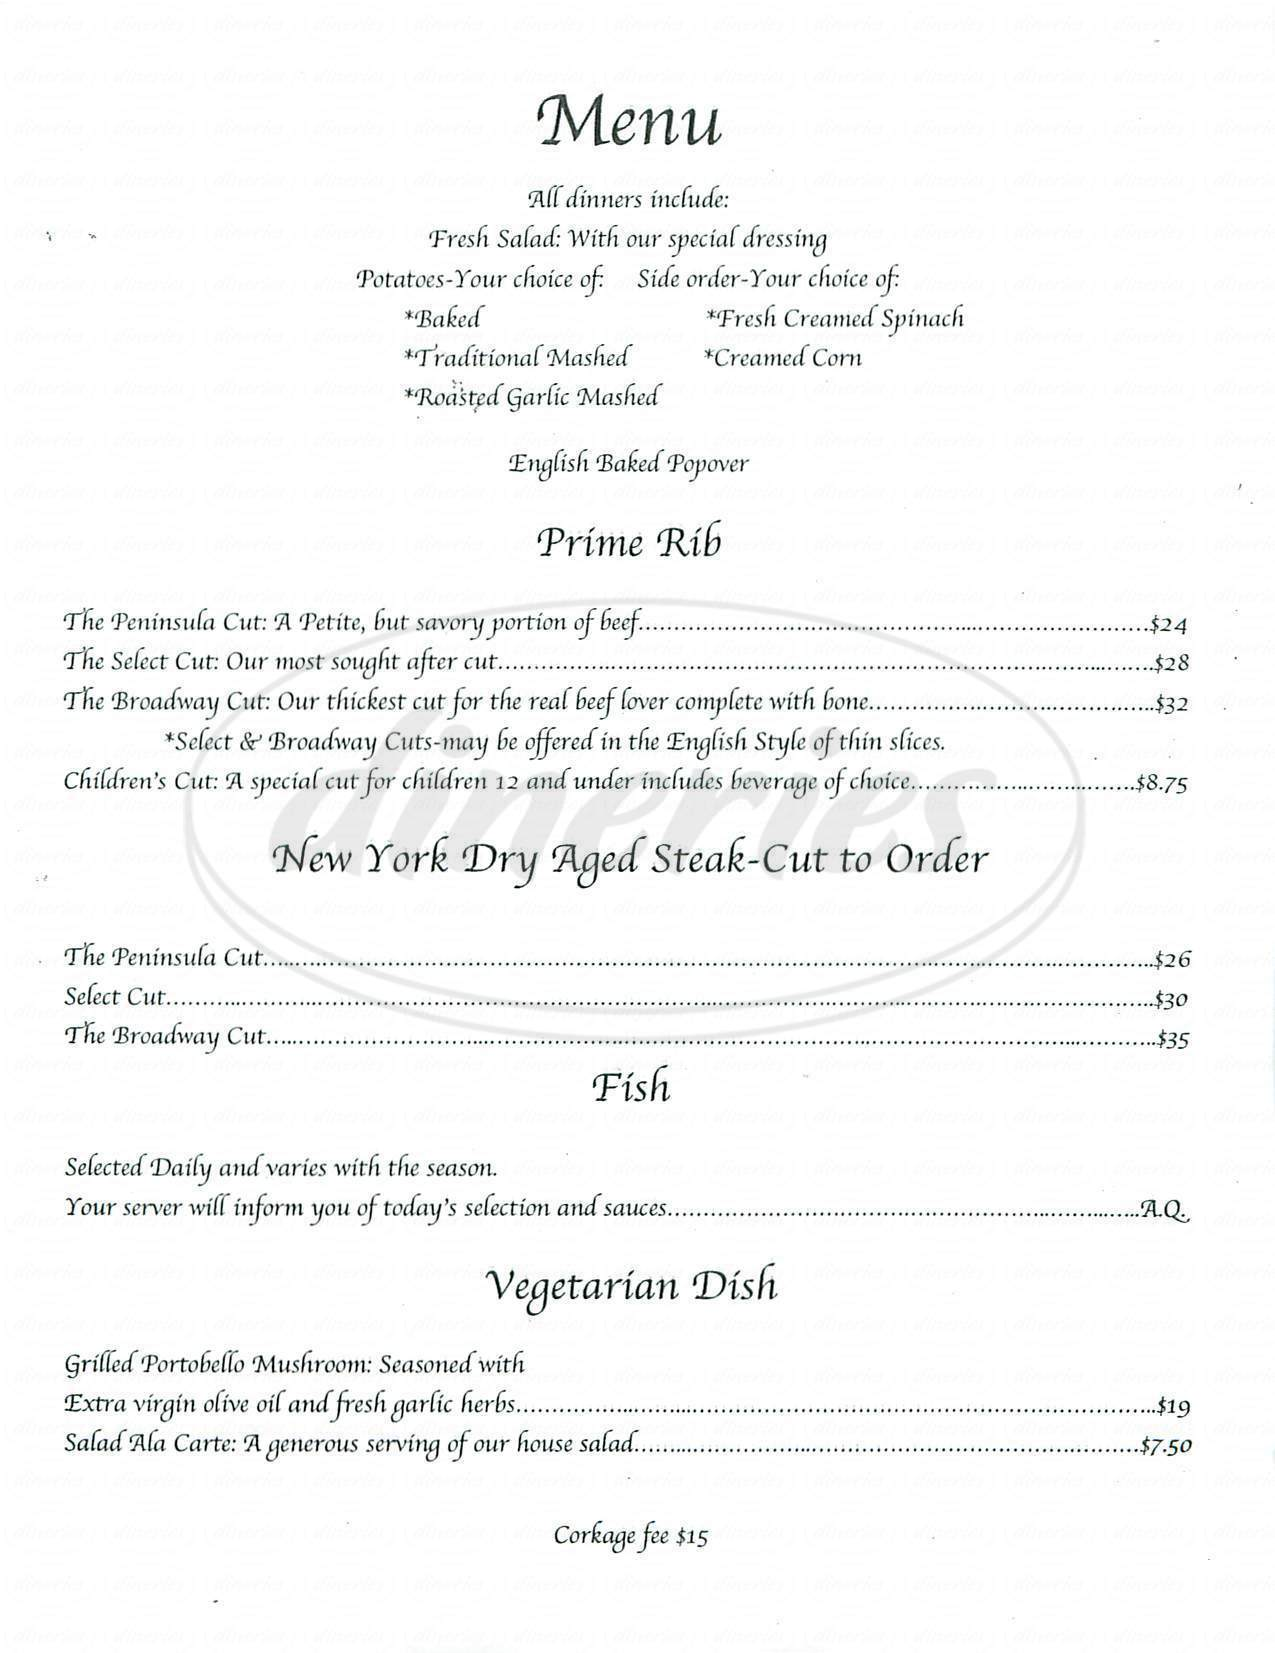 menu for Broadway Prime